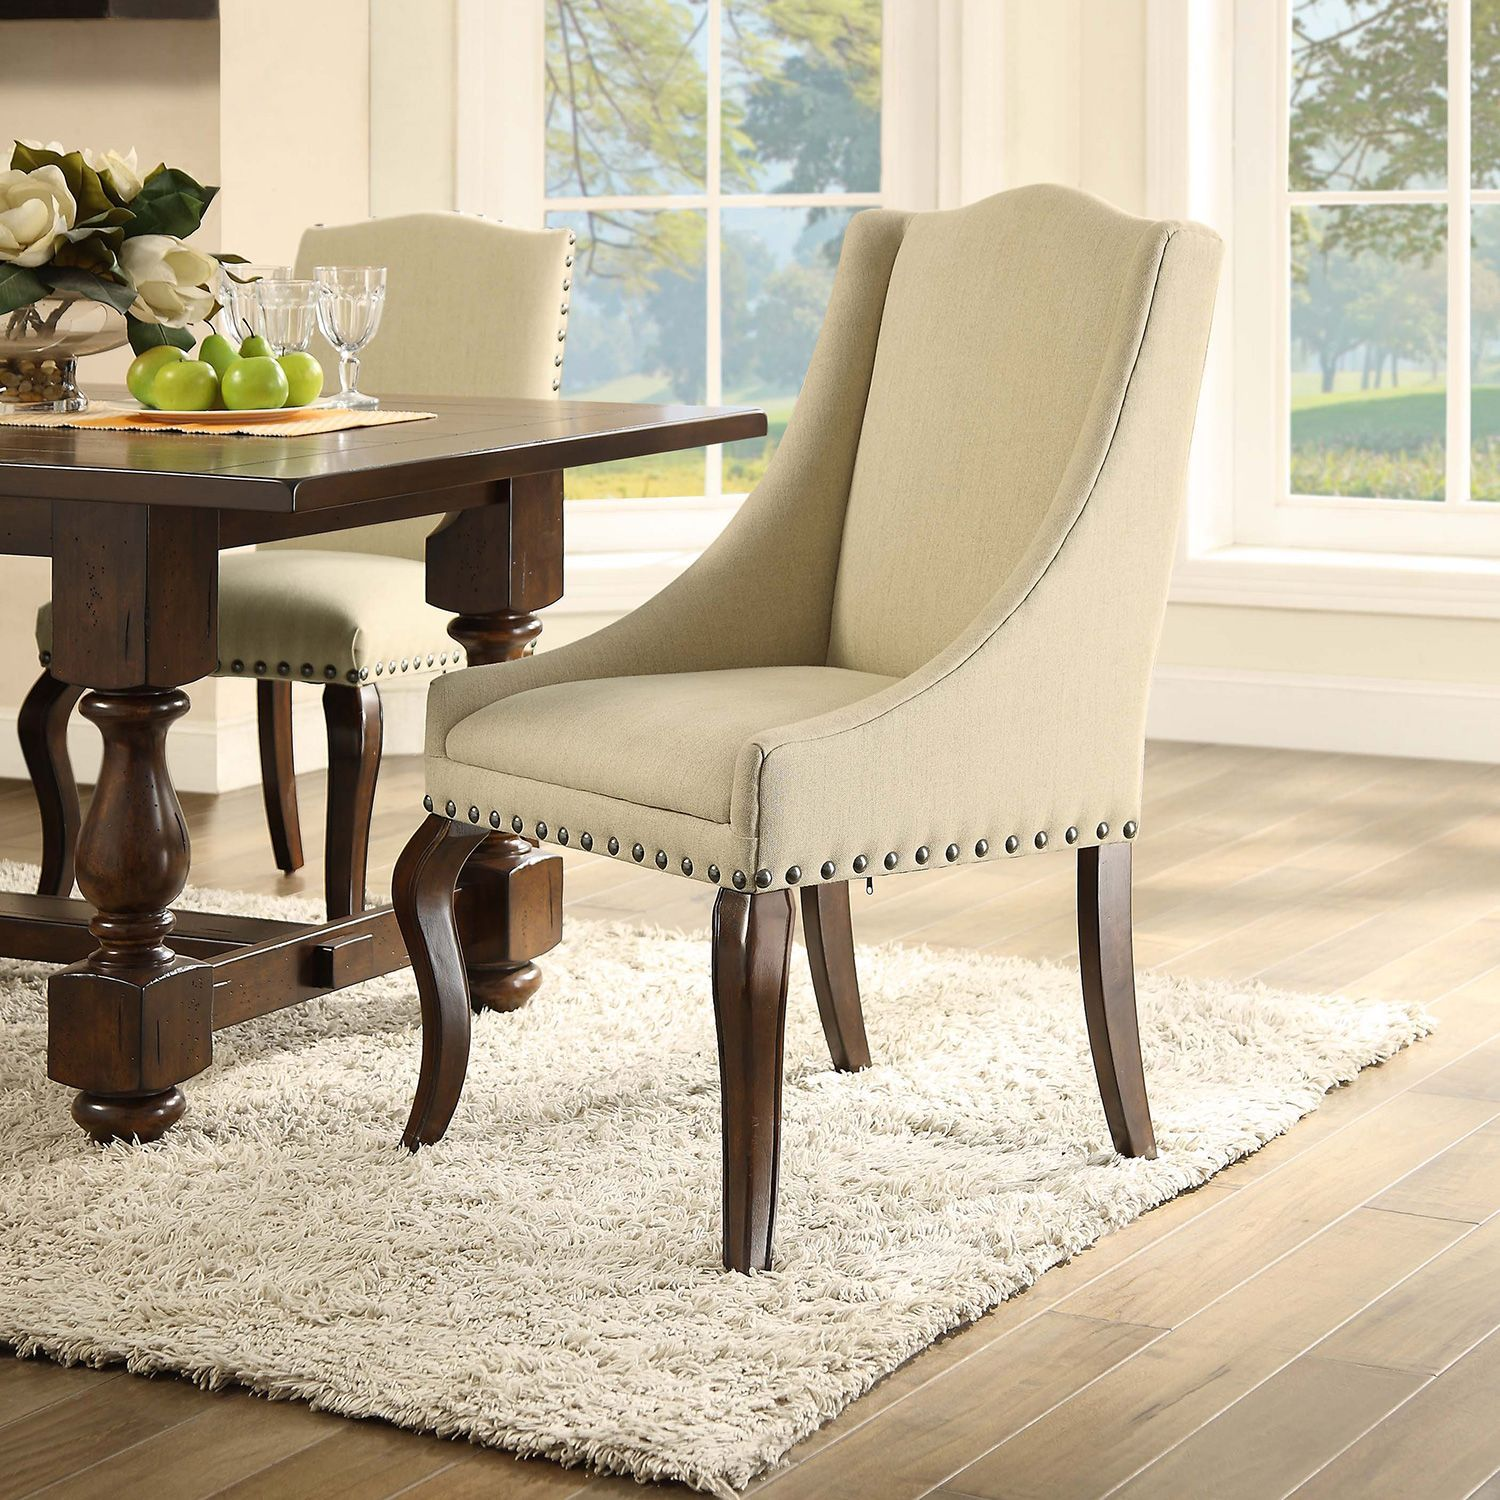 Atteberry Accent Chair Living Room ChairsLiving FurnitureFurniture DecorDining RoomsSams ClubAccent